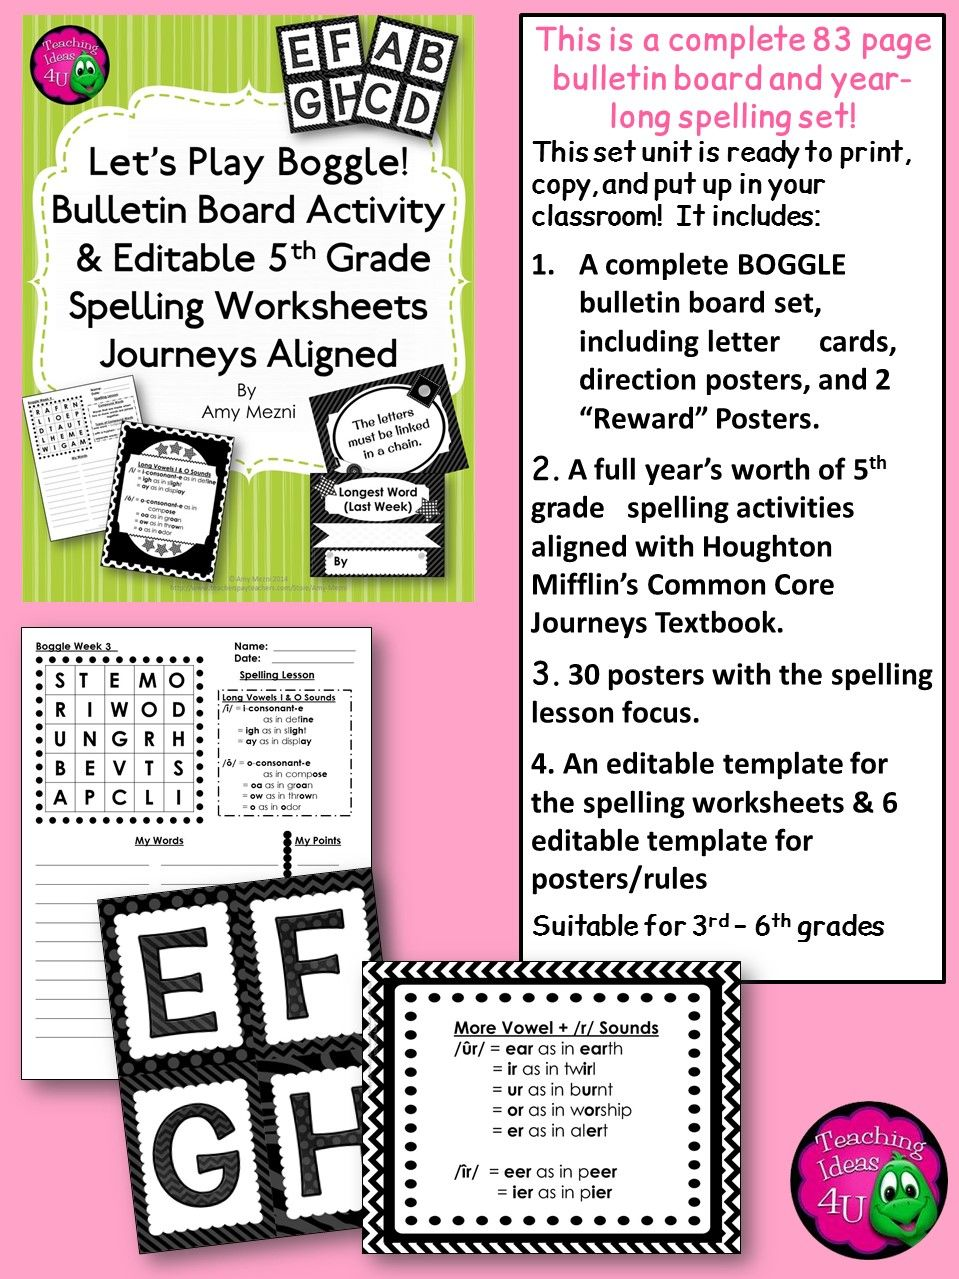 worksheet Ee Spelling Worksheets boggle bulletin board activities a set of spelling worksheets and posters for the year